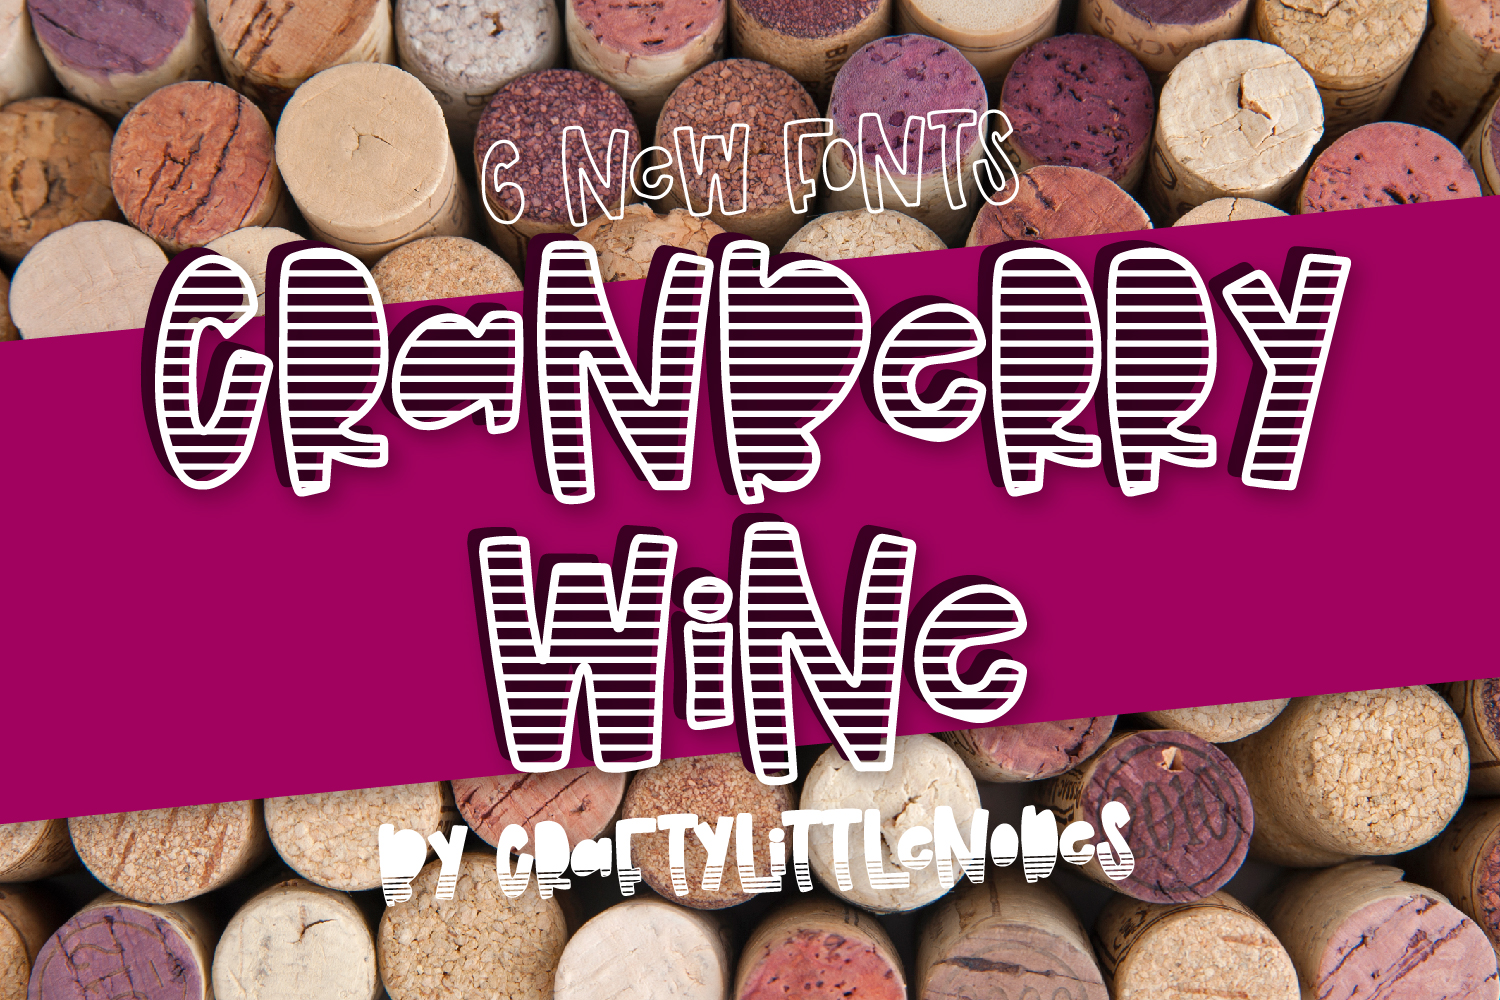 Cranberry Wine - A Striped Font Family of 6 New Fonts! example image 1